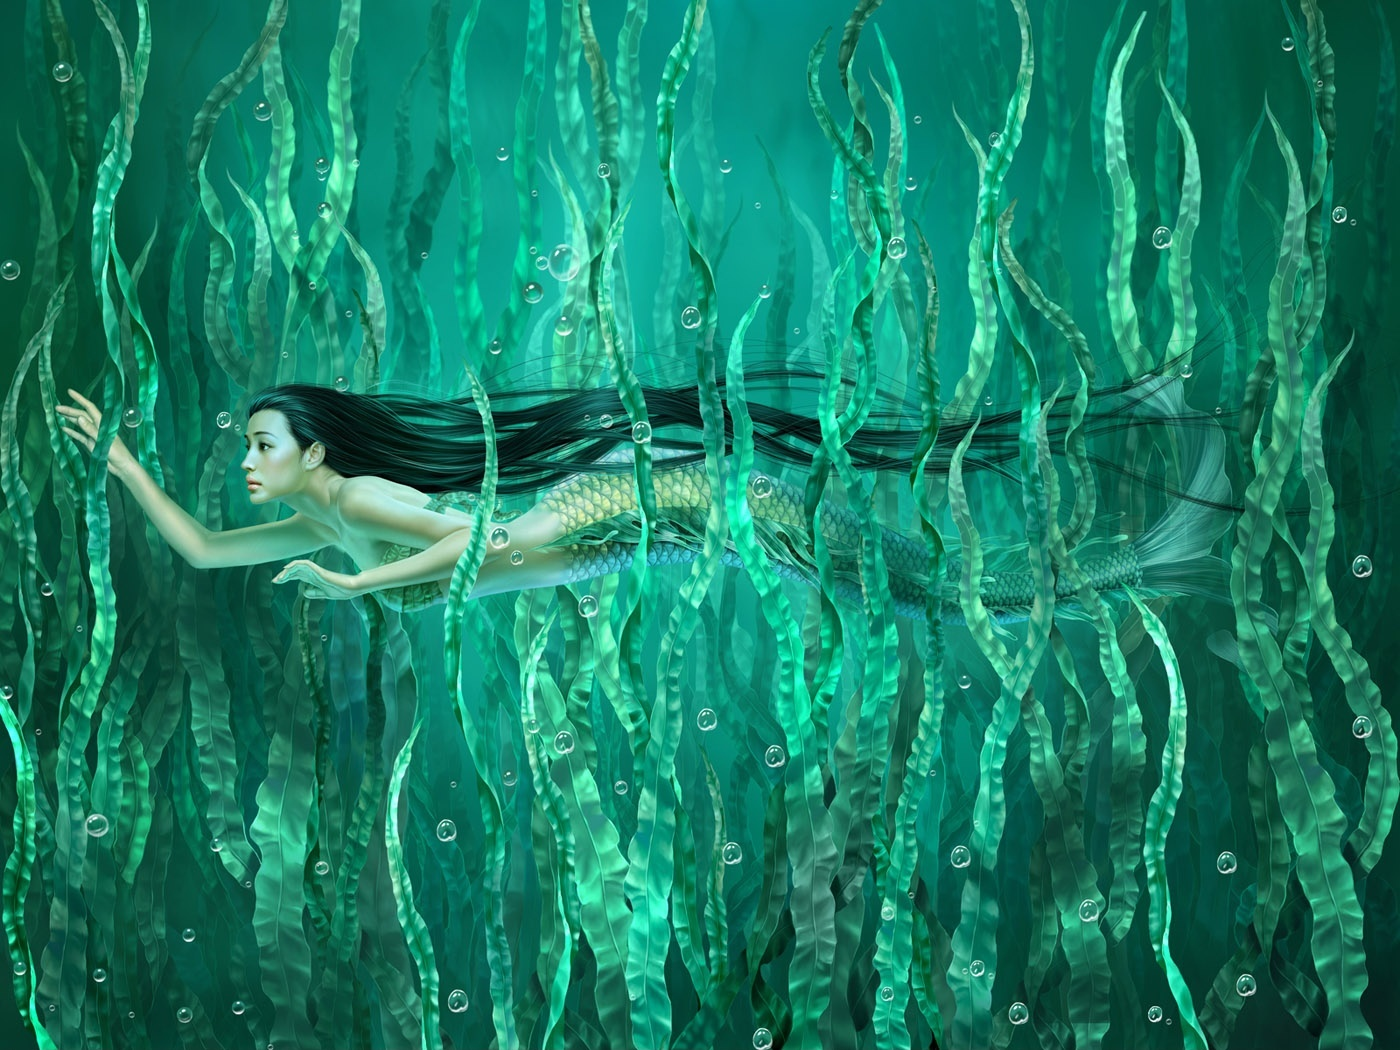 mermaid computer wallpapers desktop backgrounds